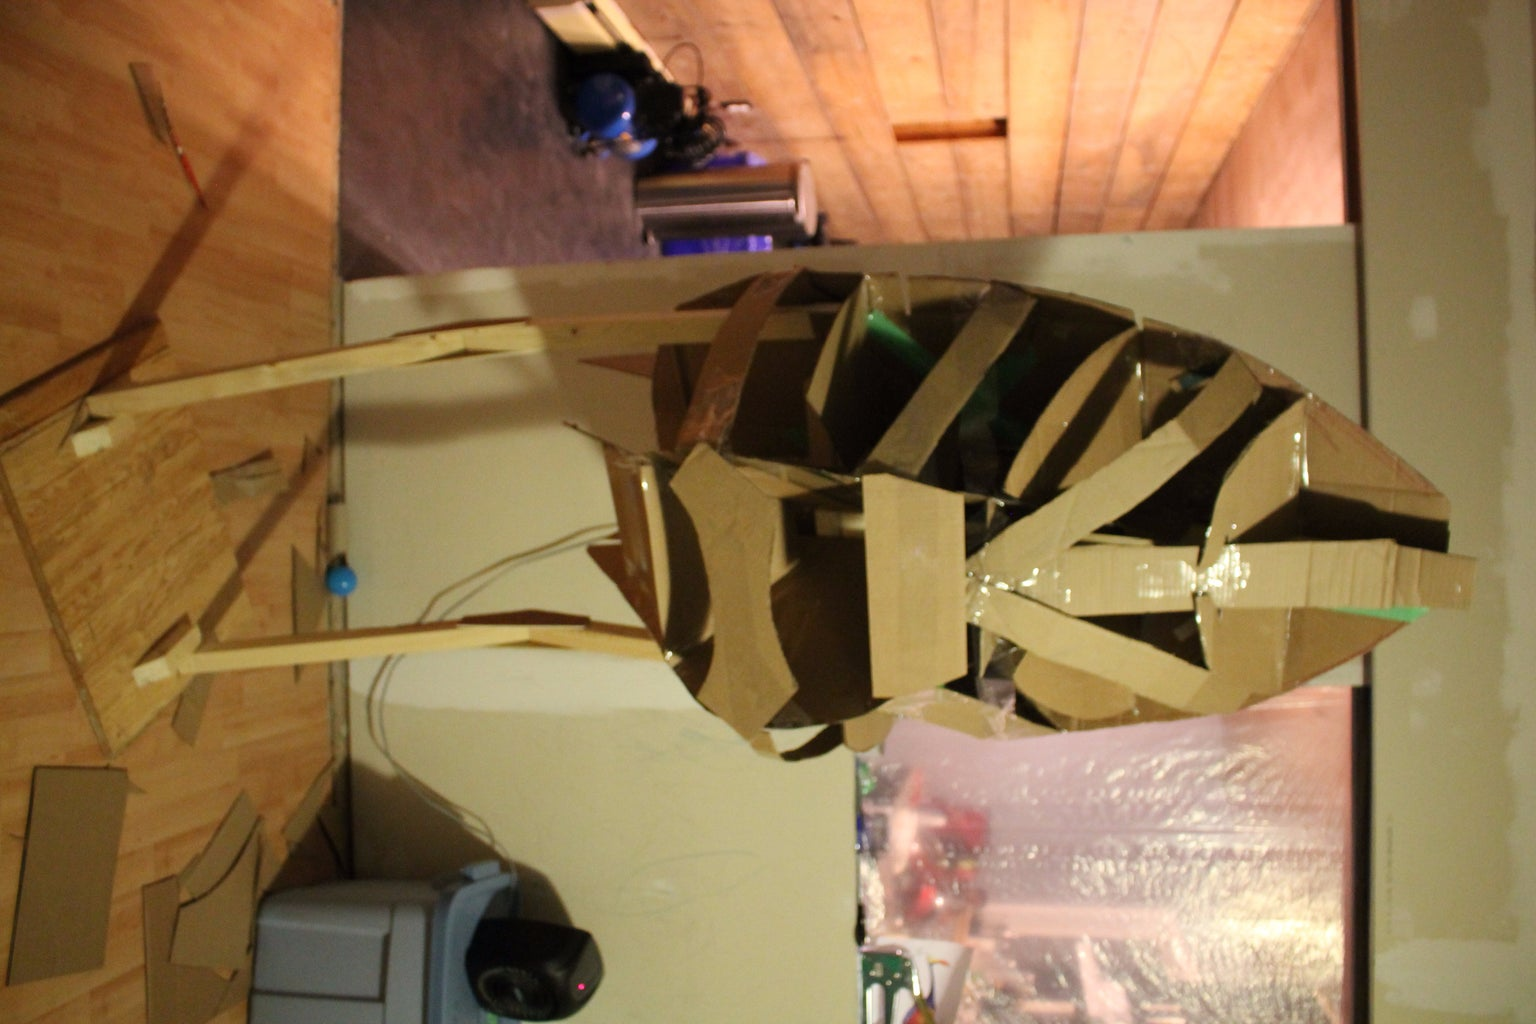 Forming the Body With Cardboard